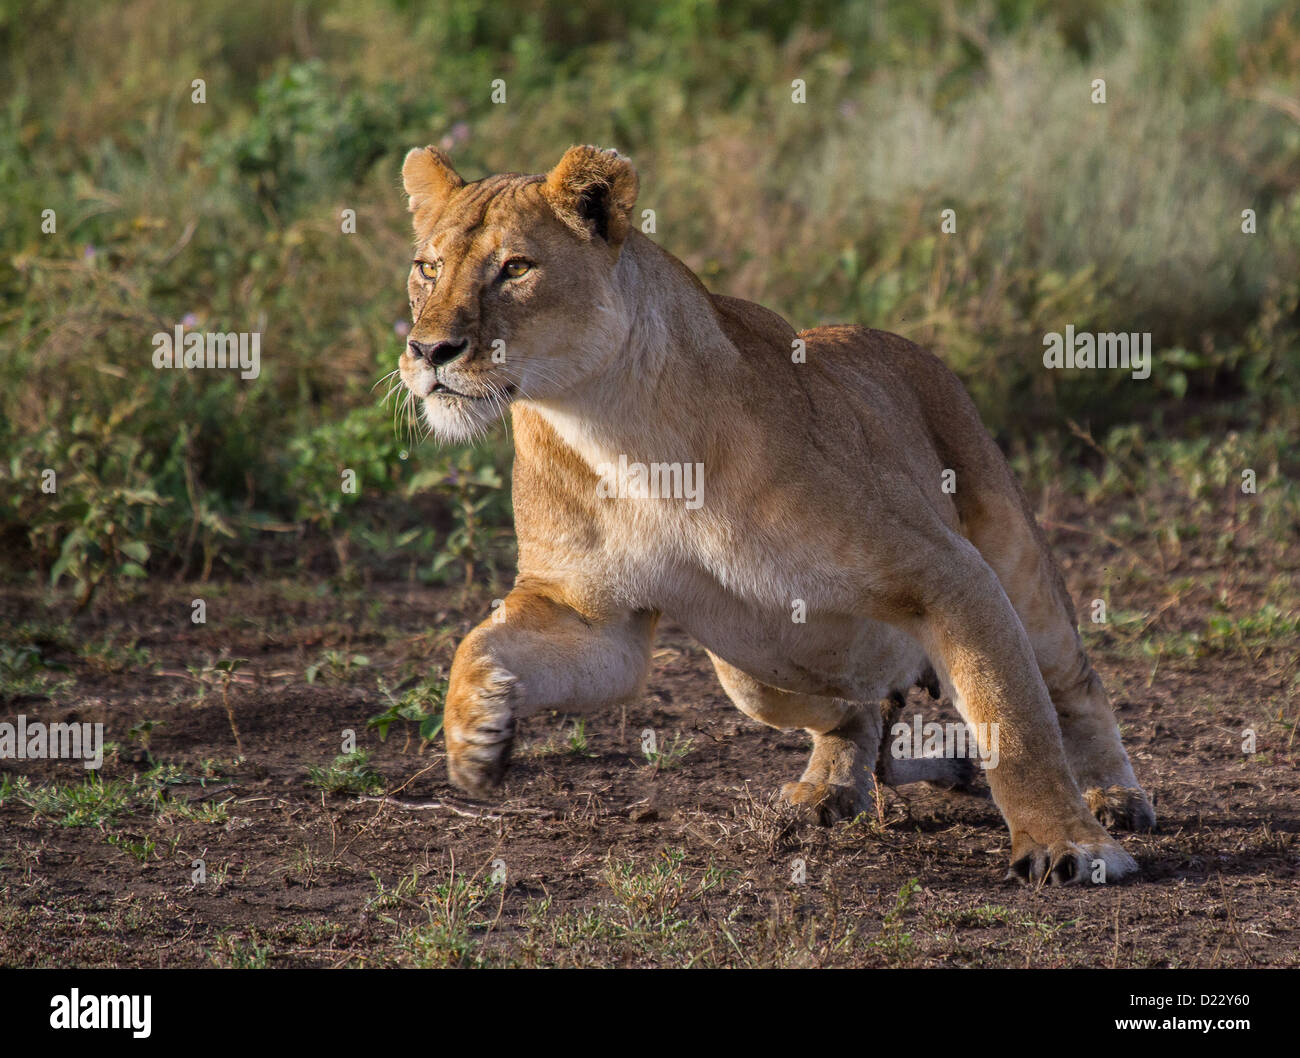 Lion Attack Stock Photos & Lion Attack Stock Images - Alamy